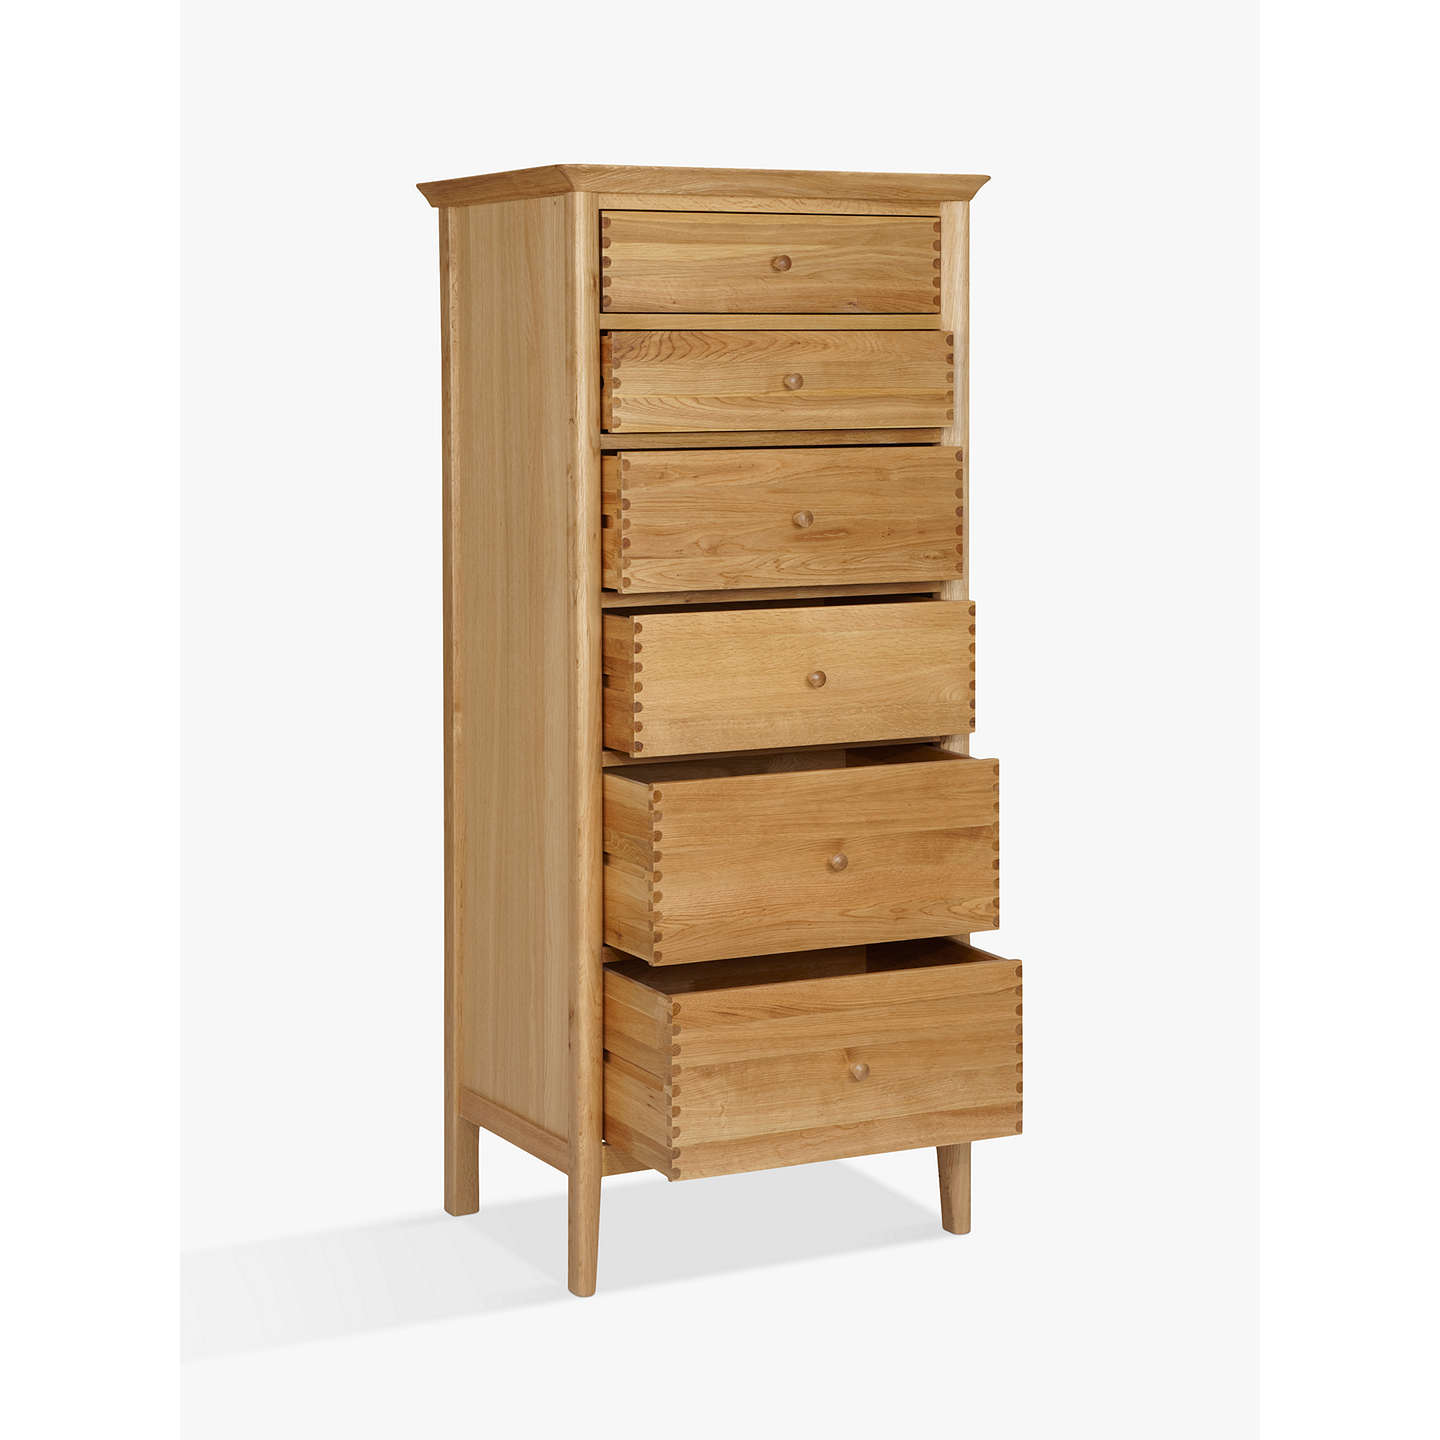 tall pdx vodder furniture drawer wayfair drawers kardiel chest boy dresser